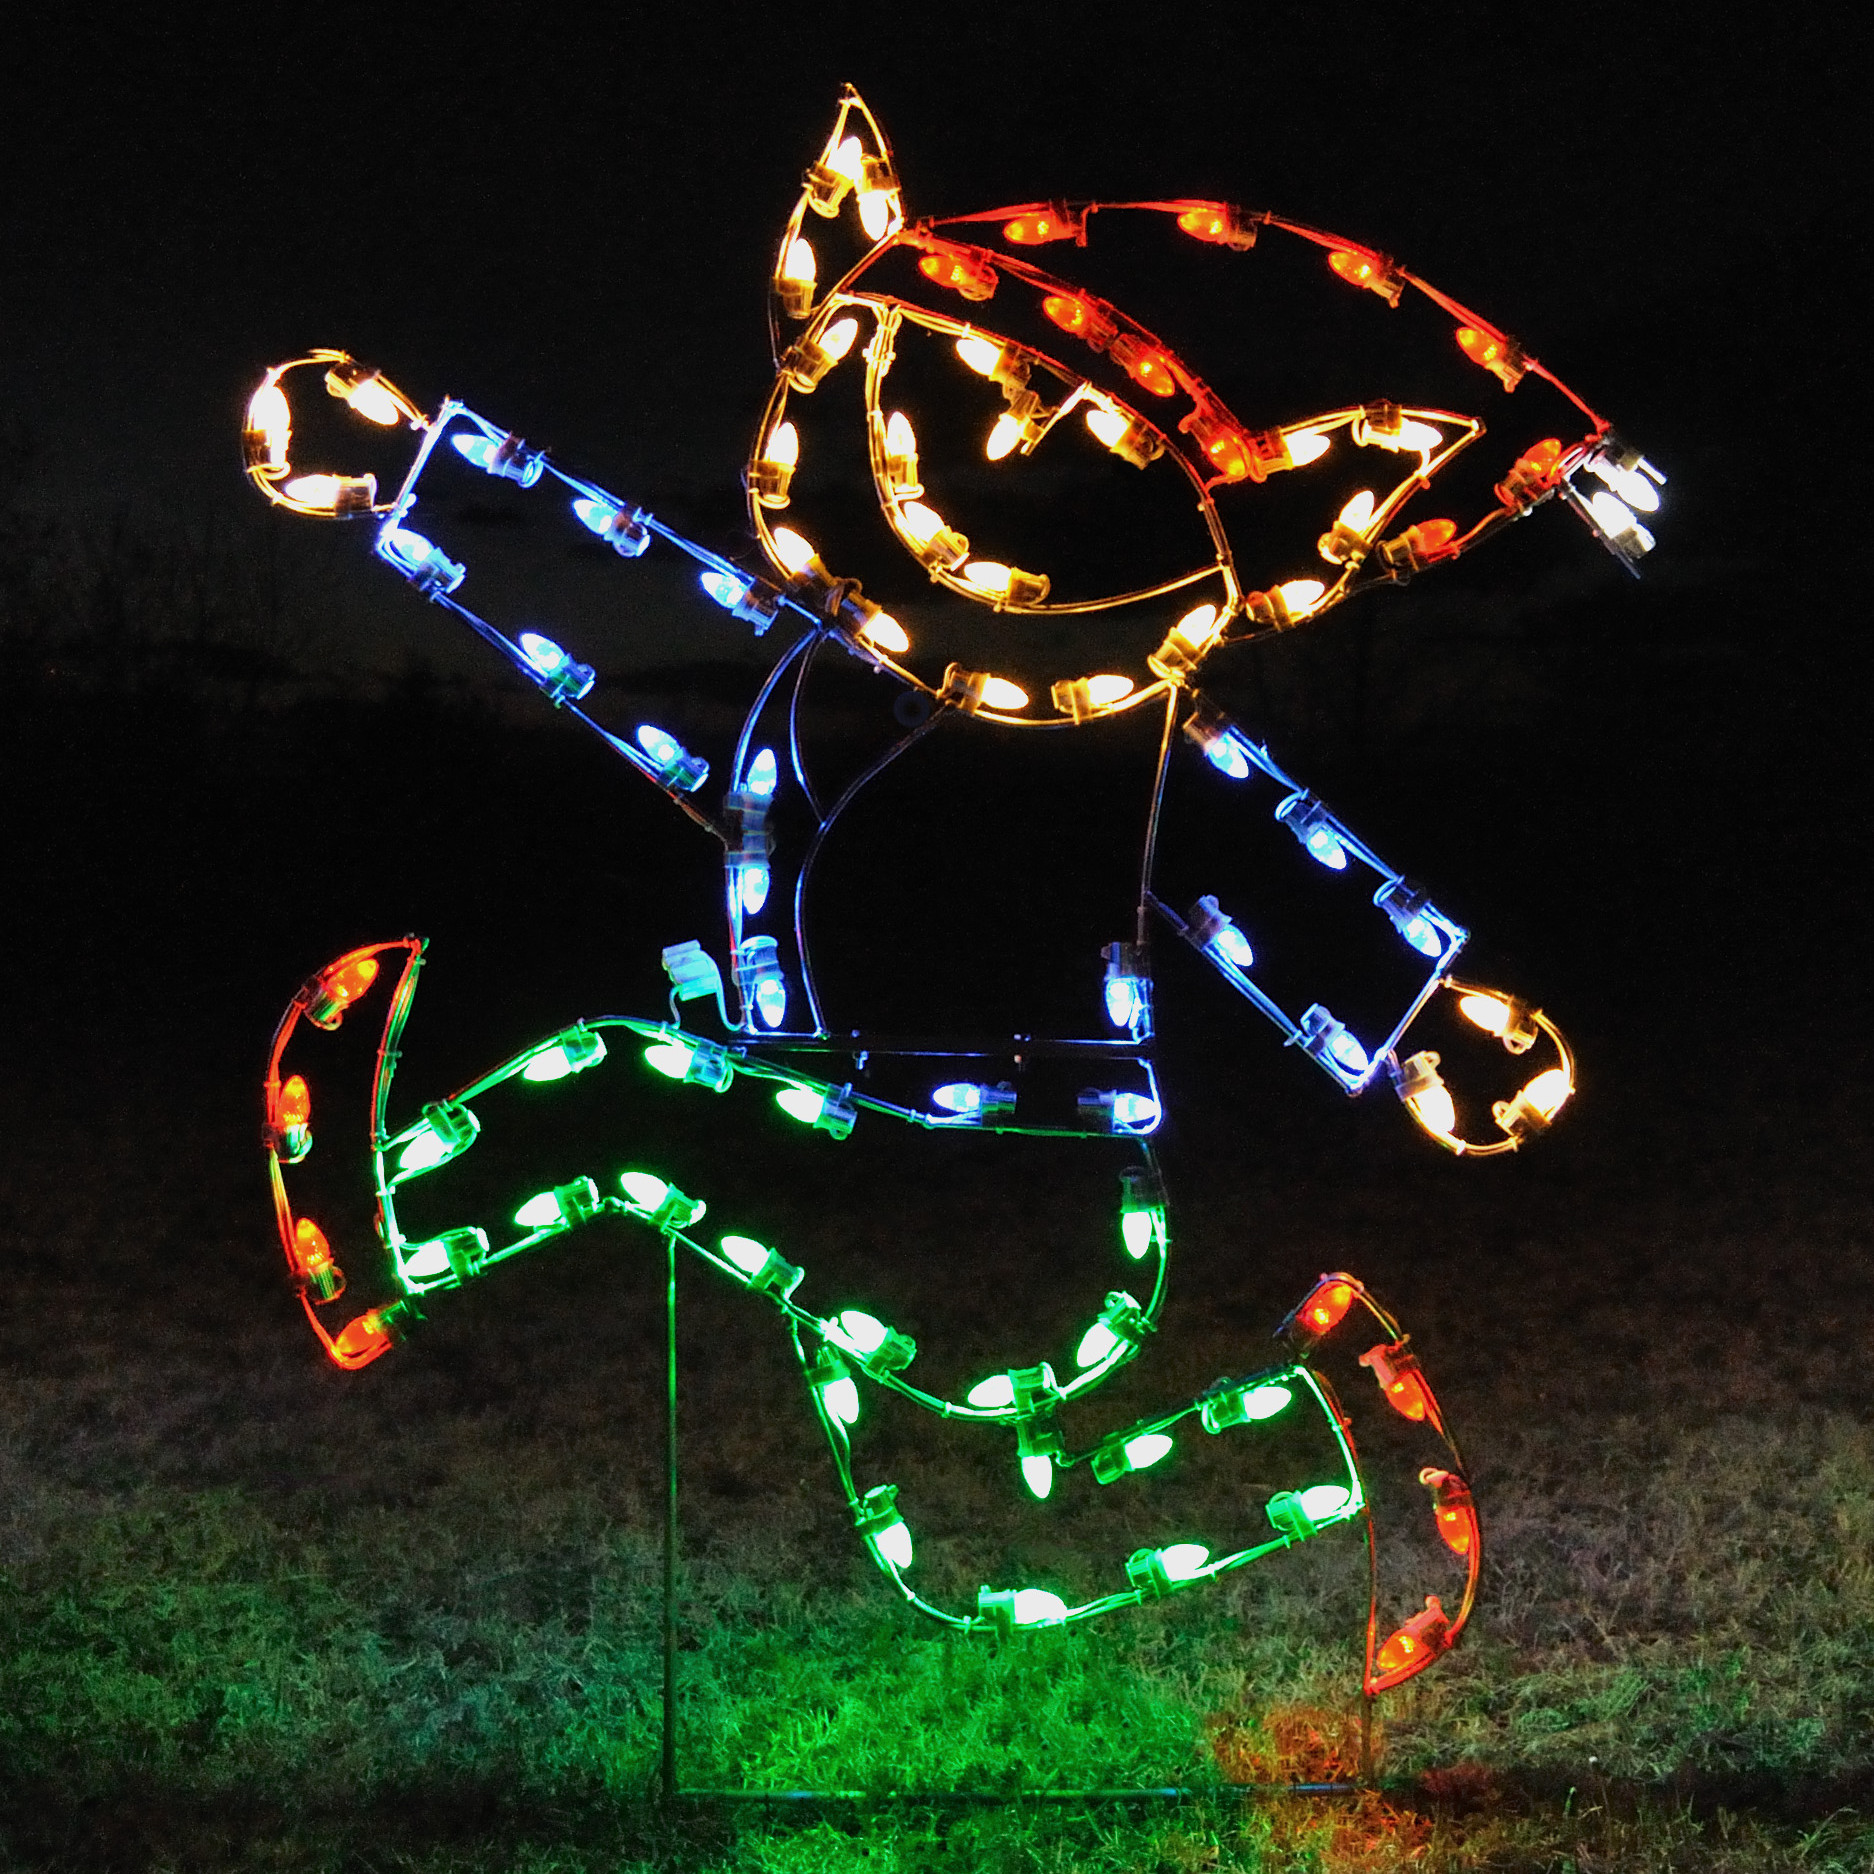 A Collection of Outdoor Christmas Light Displays 10